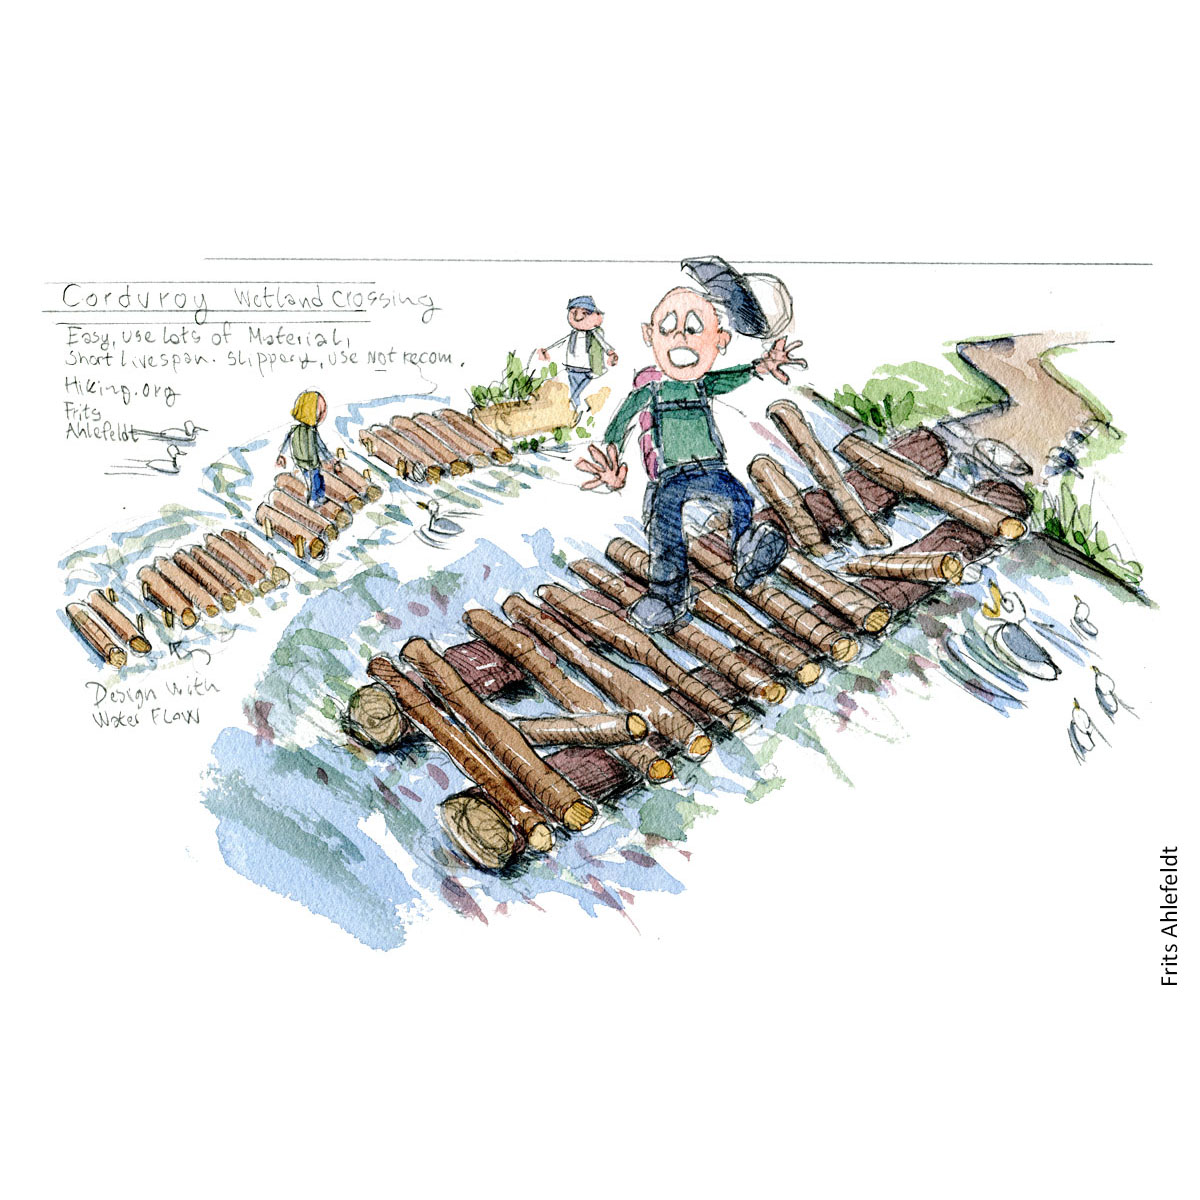 Concept sketch of line of tree trunks over wet area. Drawing by Frits Ahlefeldt. Hiking.org